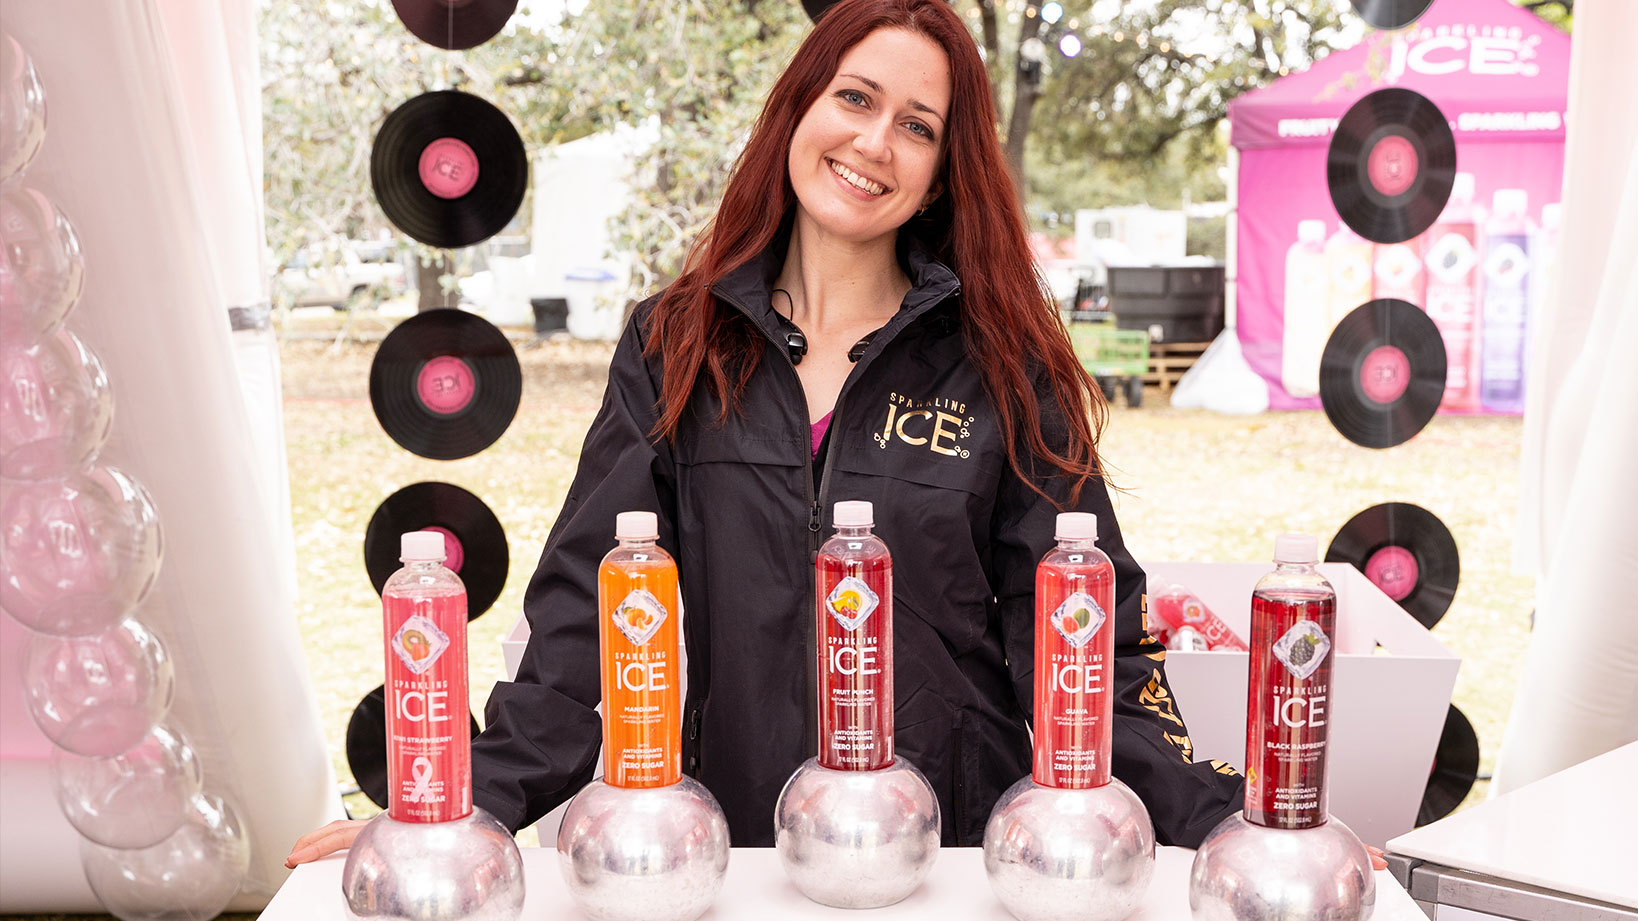 Sparkling Ice – Product Sampling